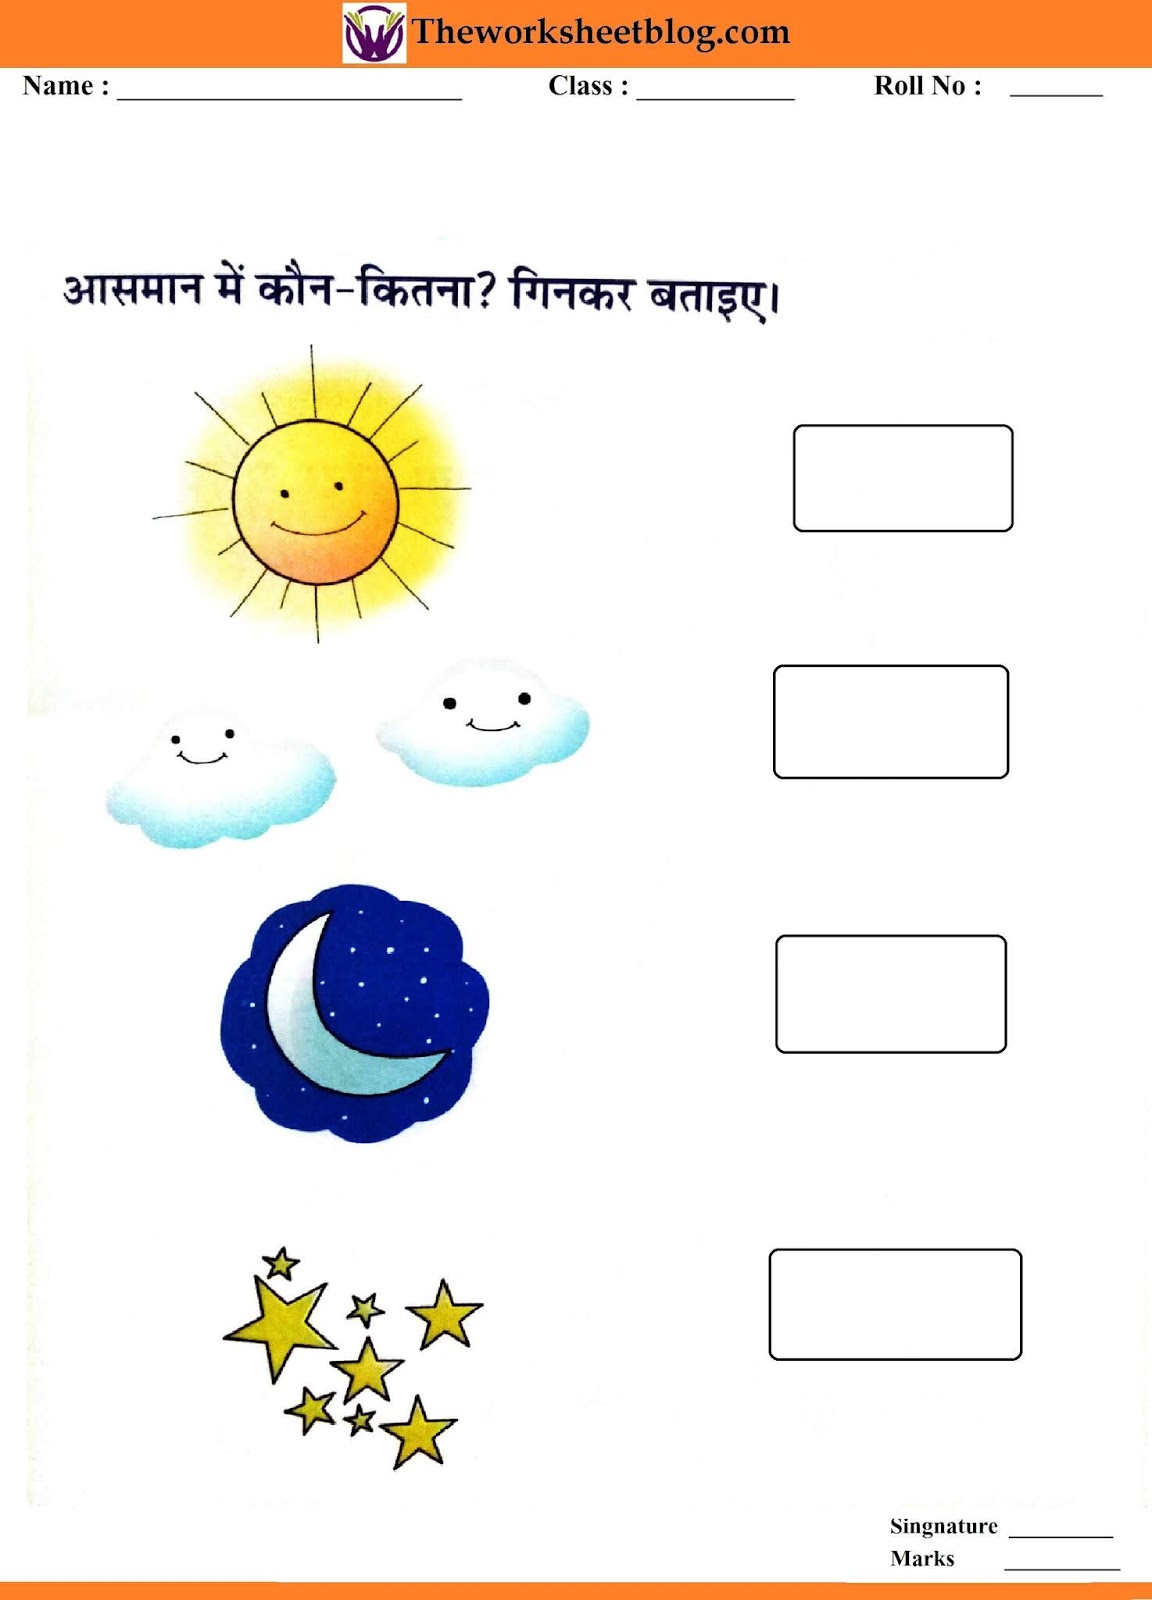 hight resolution of Hindi activity worksheet for beginners with pictures. - Theworksheetsblog